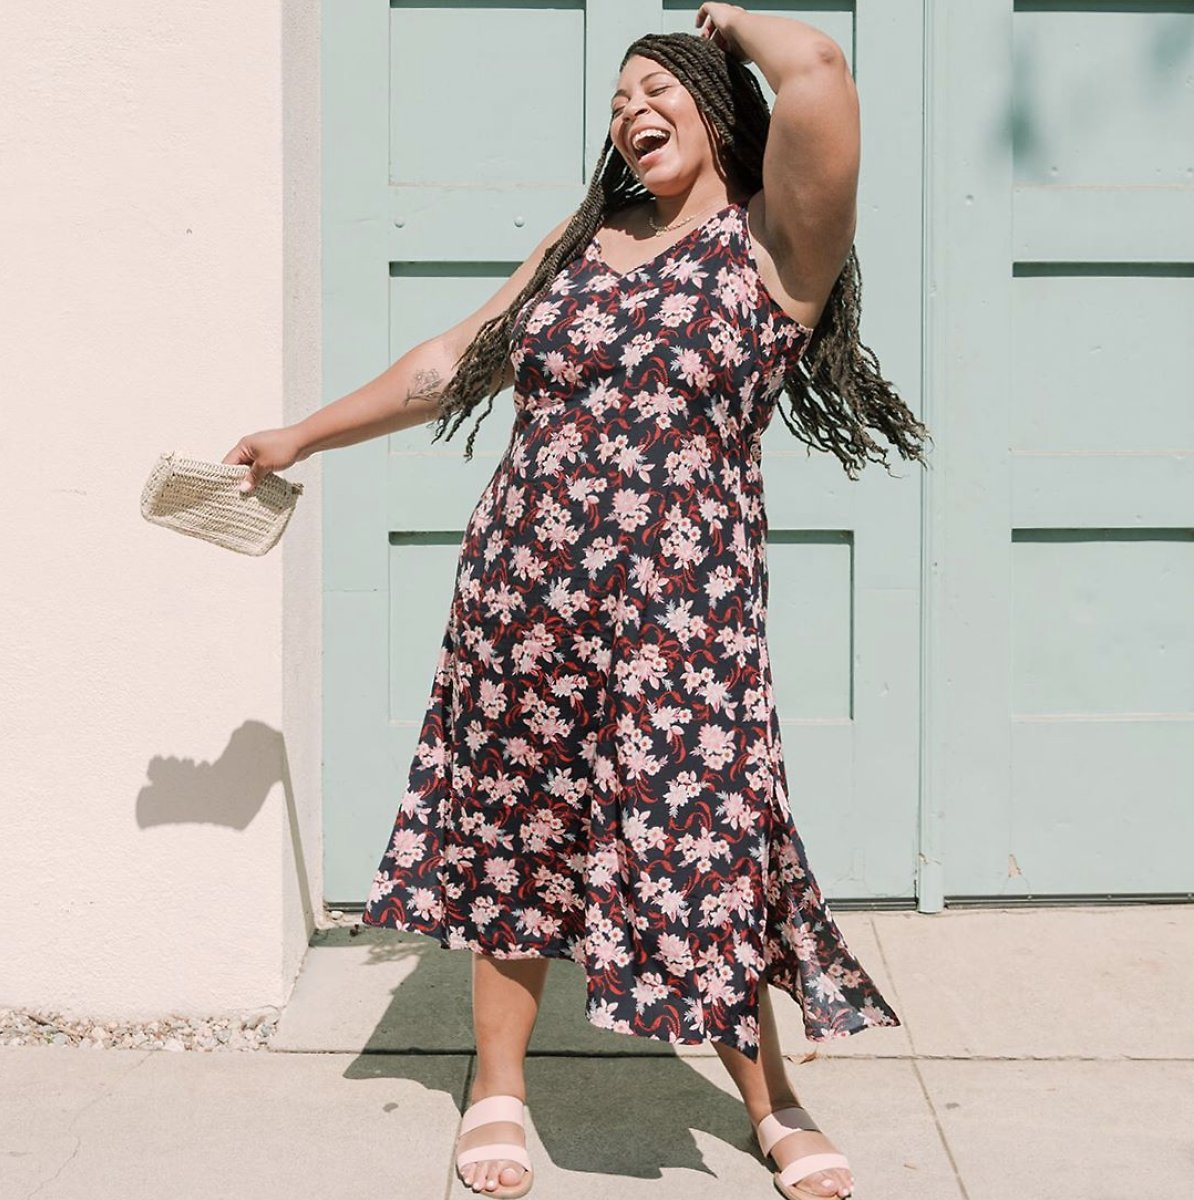 Up to 70% Off Sale + Extra $50 Off $75  Now at LOFT Outlet: